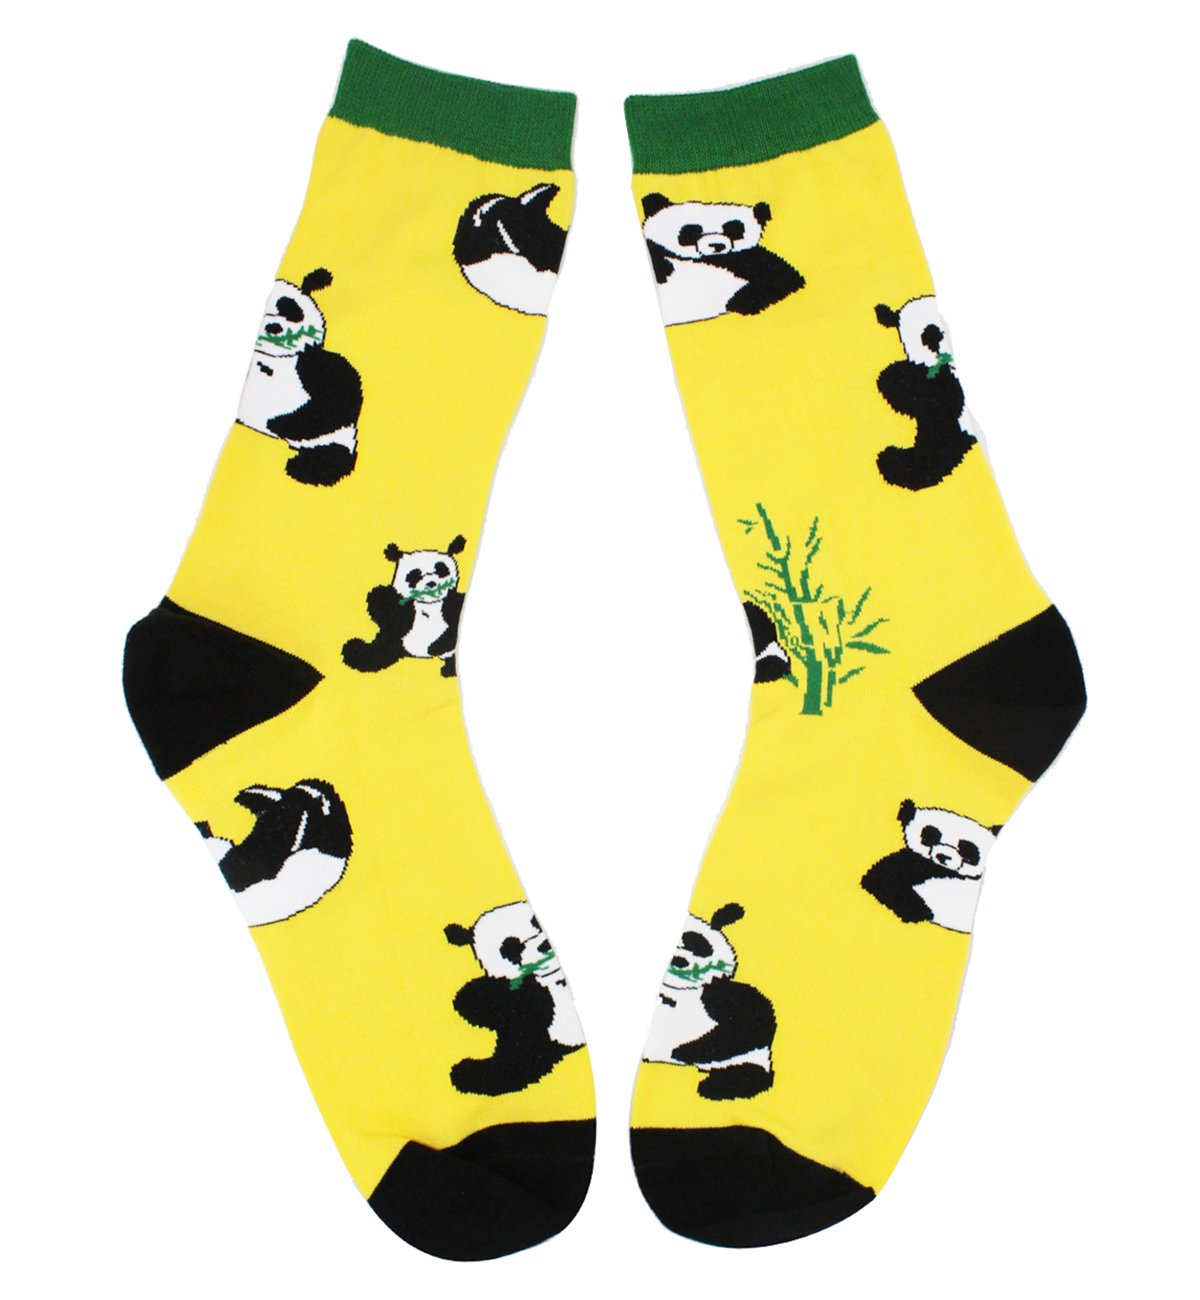 3 Pack Men's Crazy Cool Animals Pattern Novelty Crew Cotton Funny Socks by Happypop (Image #4)